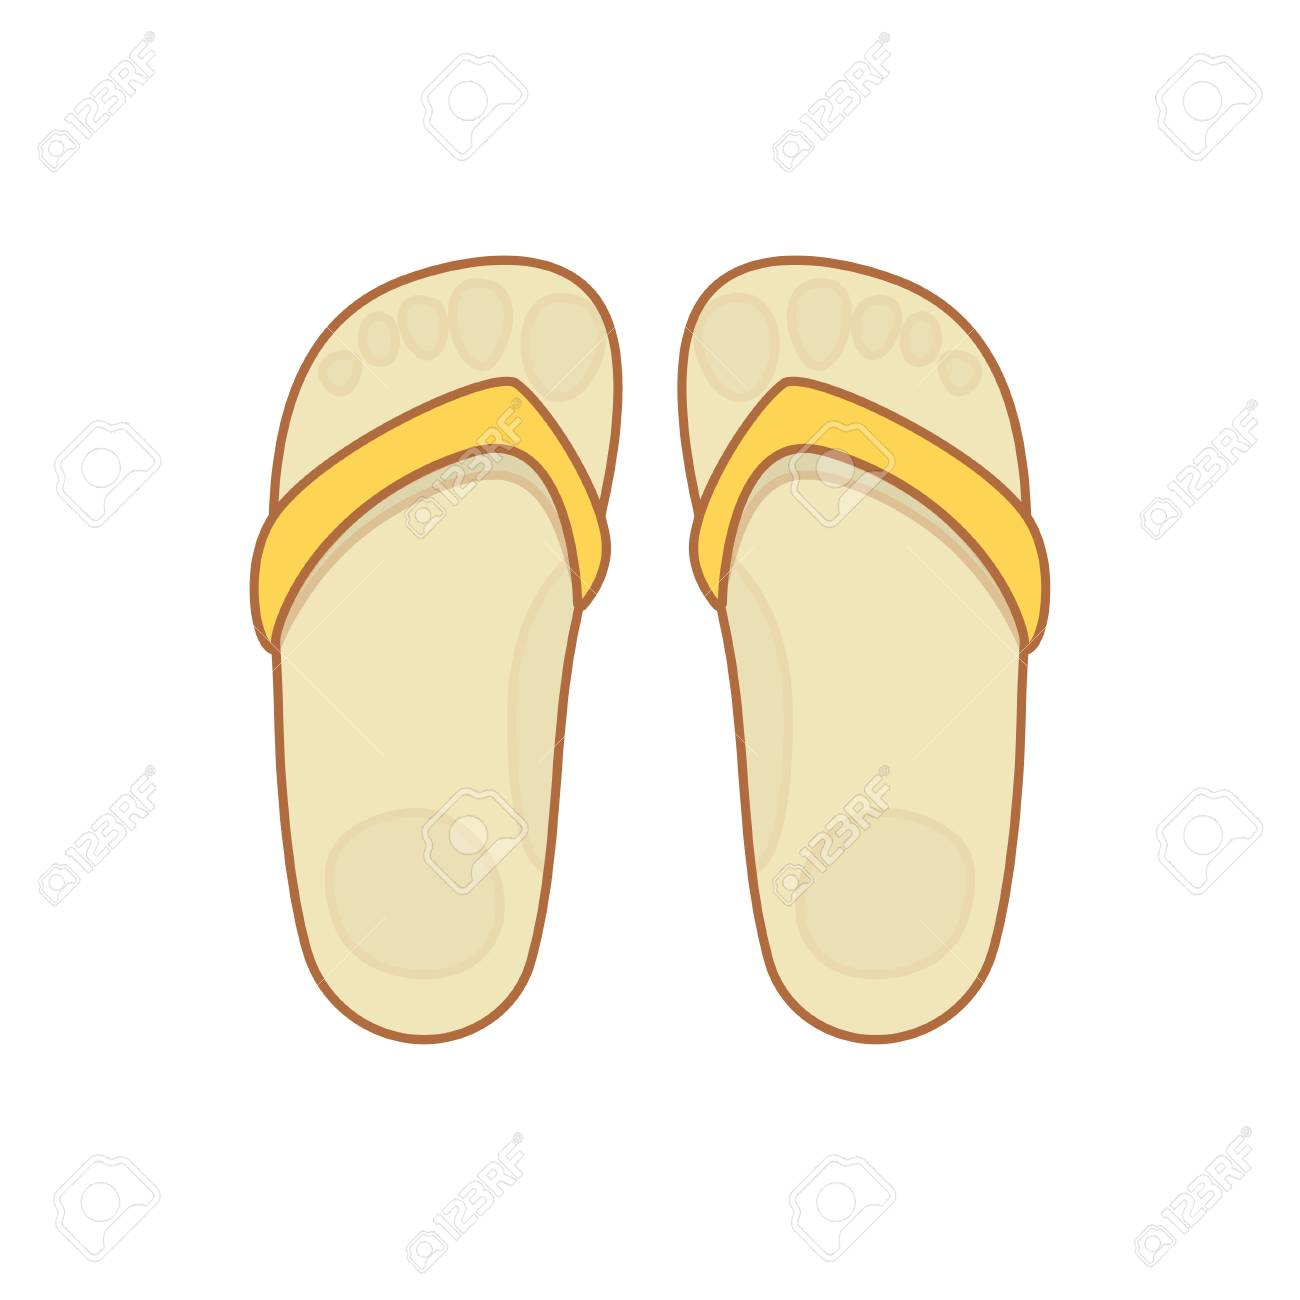 9c0b1569dce30 Flip-flops Isolated On A White Background. Royalty Free Cliparts ...